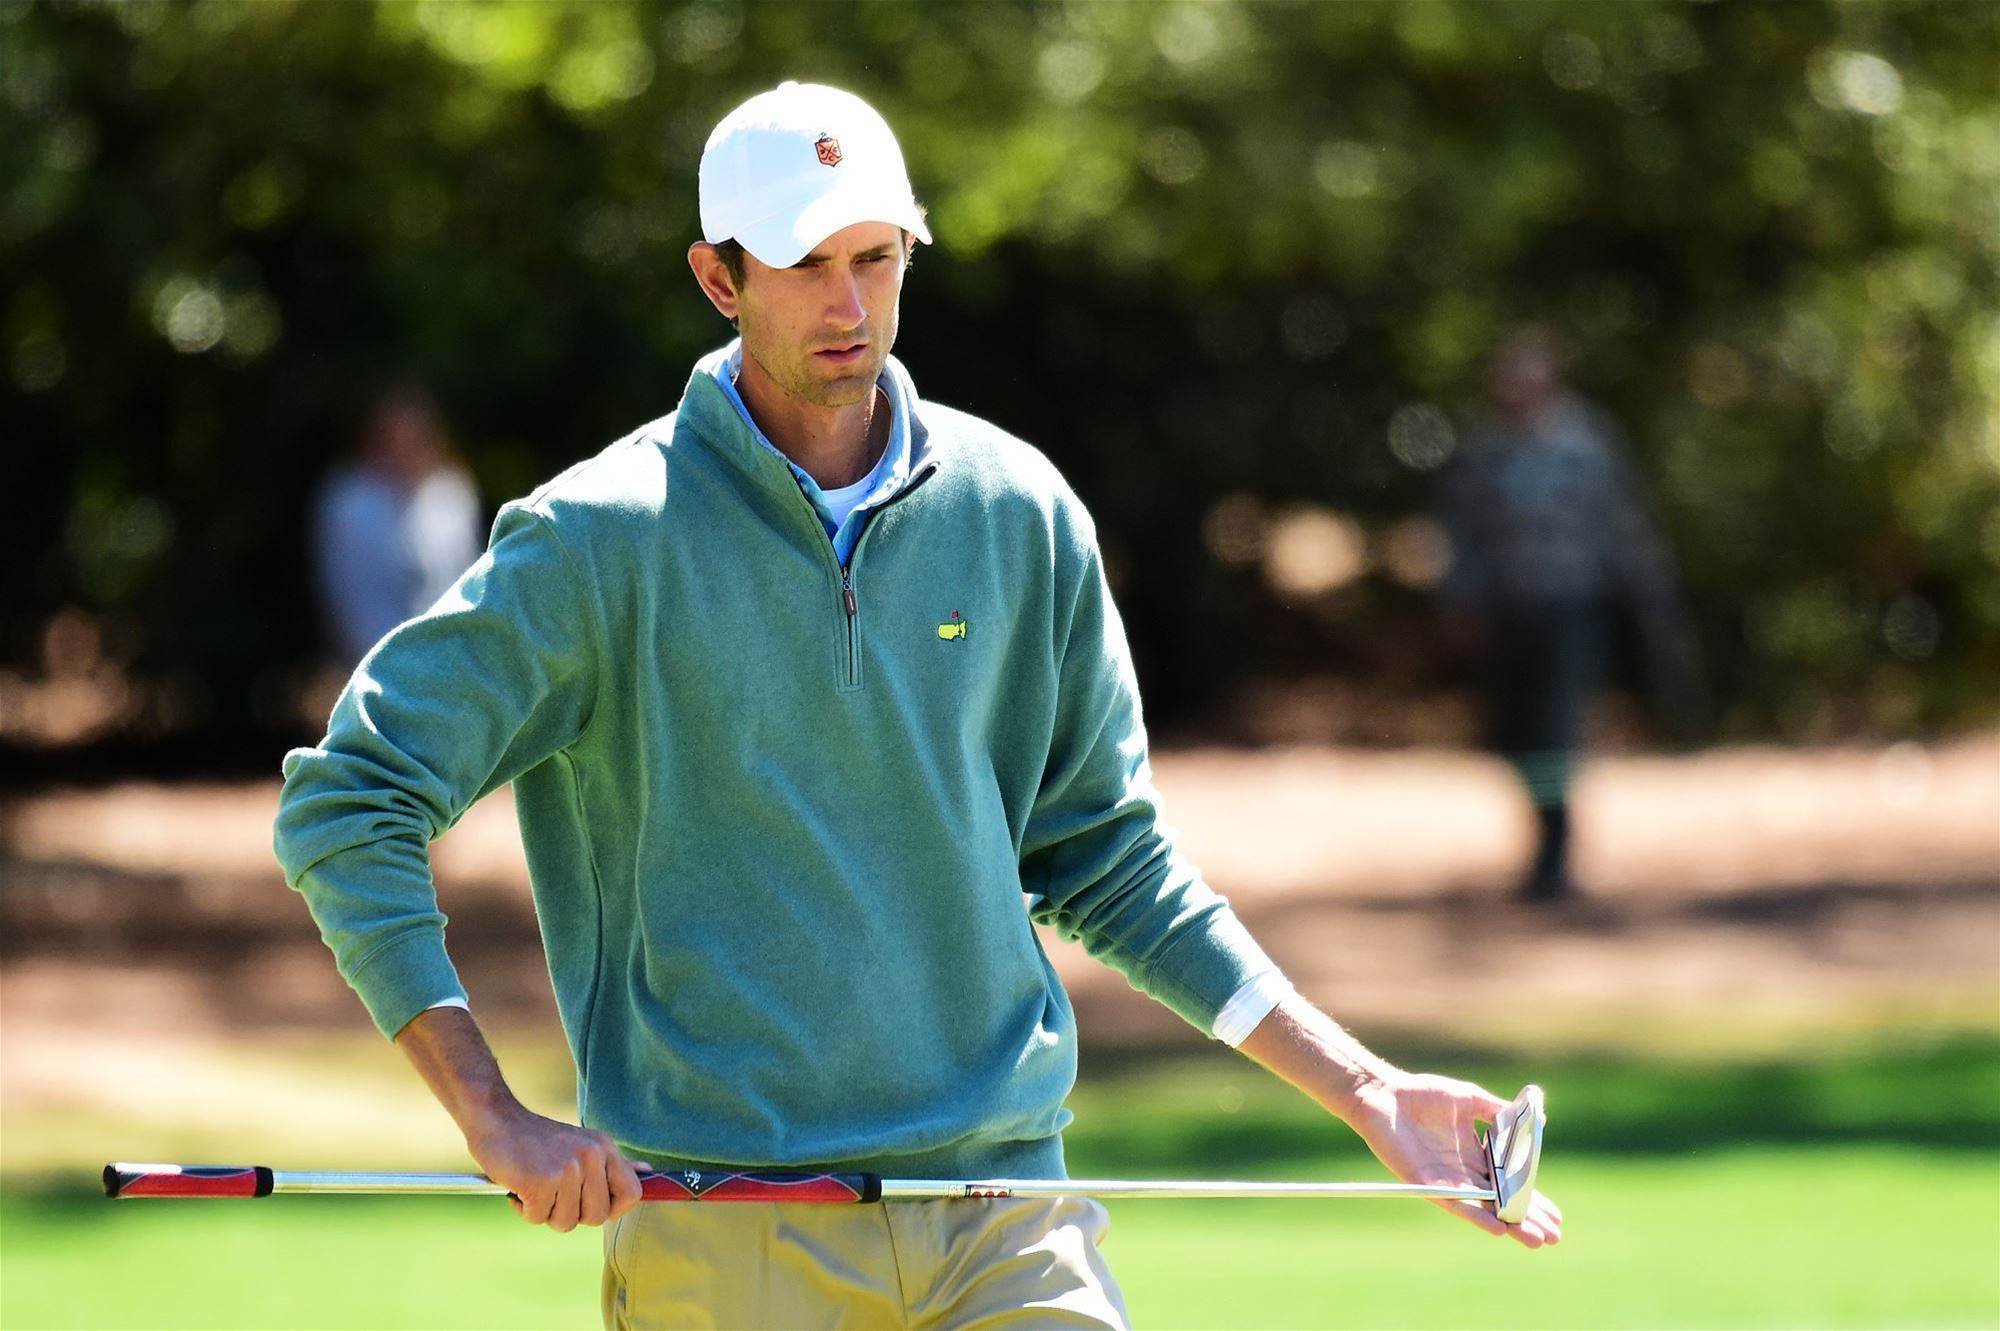 masters curtis luck joins the pro ranks golf magazine financial analyst stewart hagestad collected he silver cup for being low amateur at the masters photo rob carr getty images